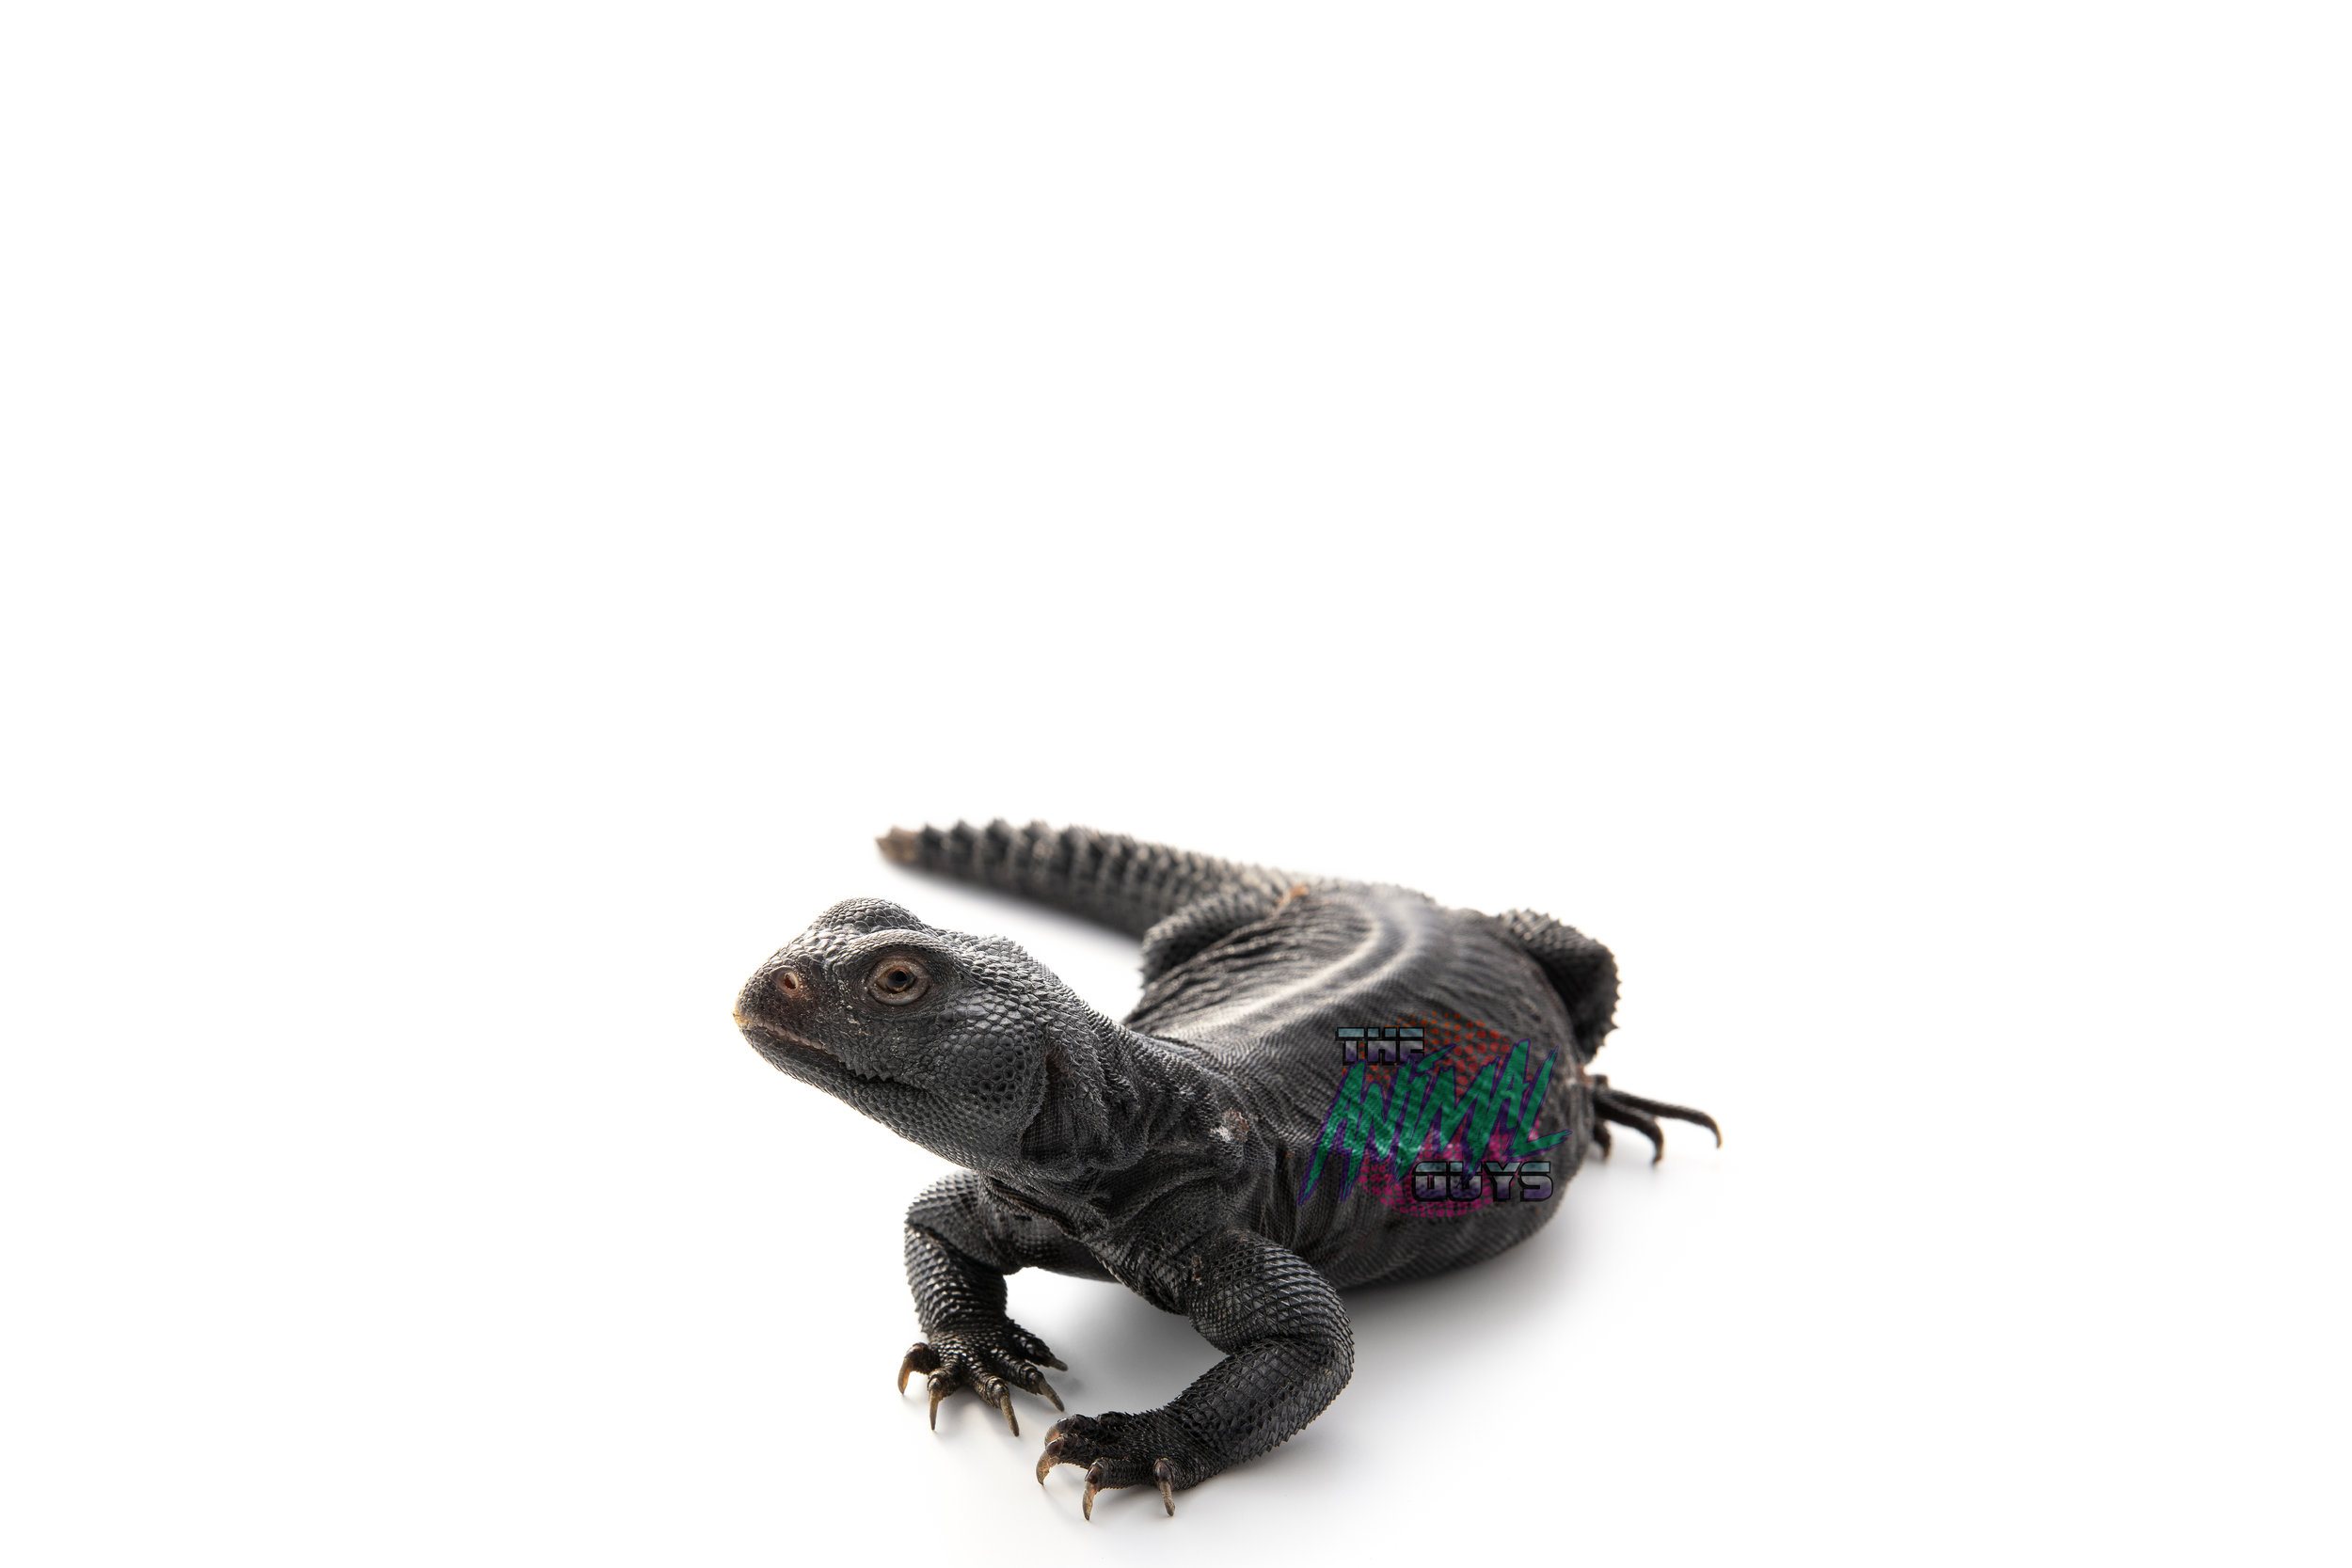 HAPPY - BANDED UROMASTYX - 4yr OLDDOES NOT BLOW FIREVEGETARIAN